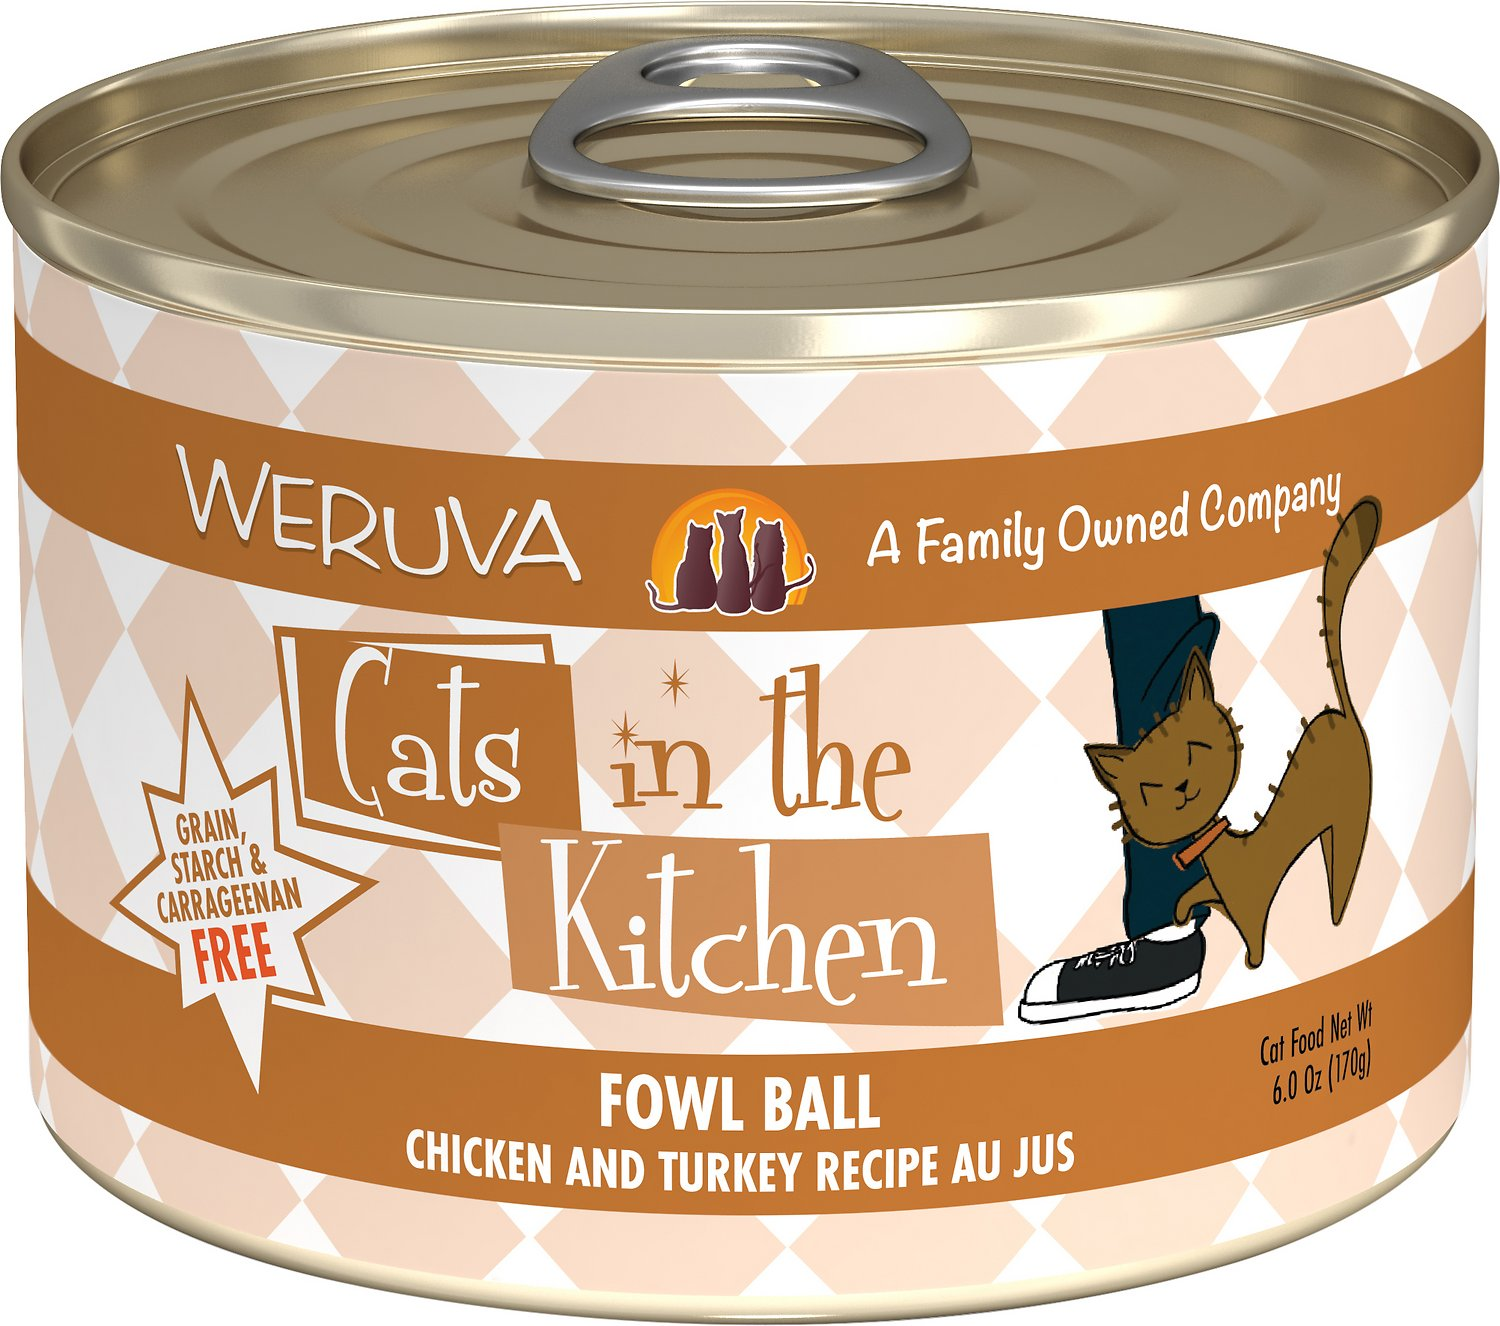 Weruva Cats in the Kitchen Fowl Ball Chicken & Turkey Au Jus Grain-Free Wet Cat Food, 6-oz